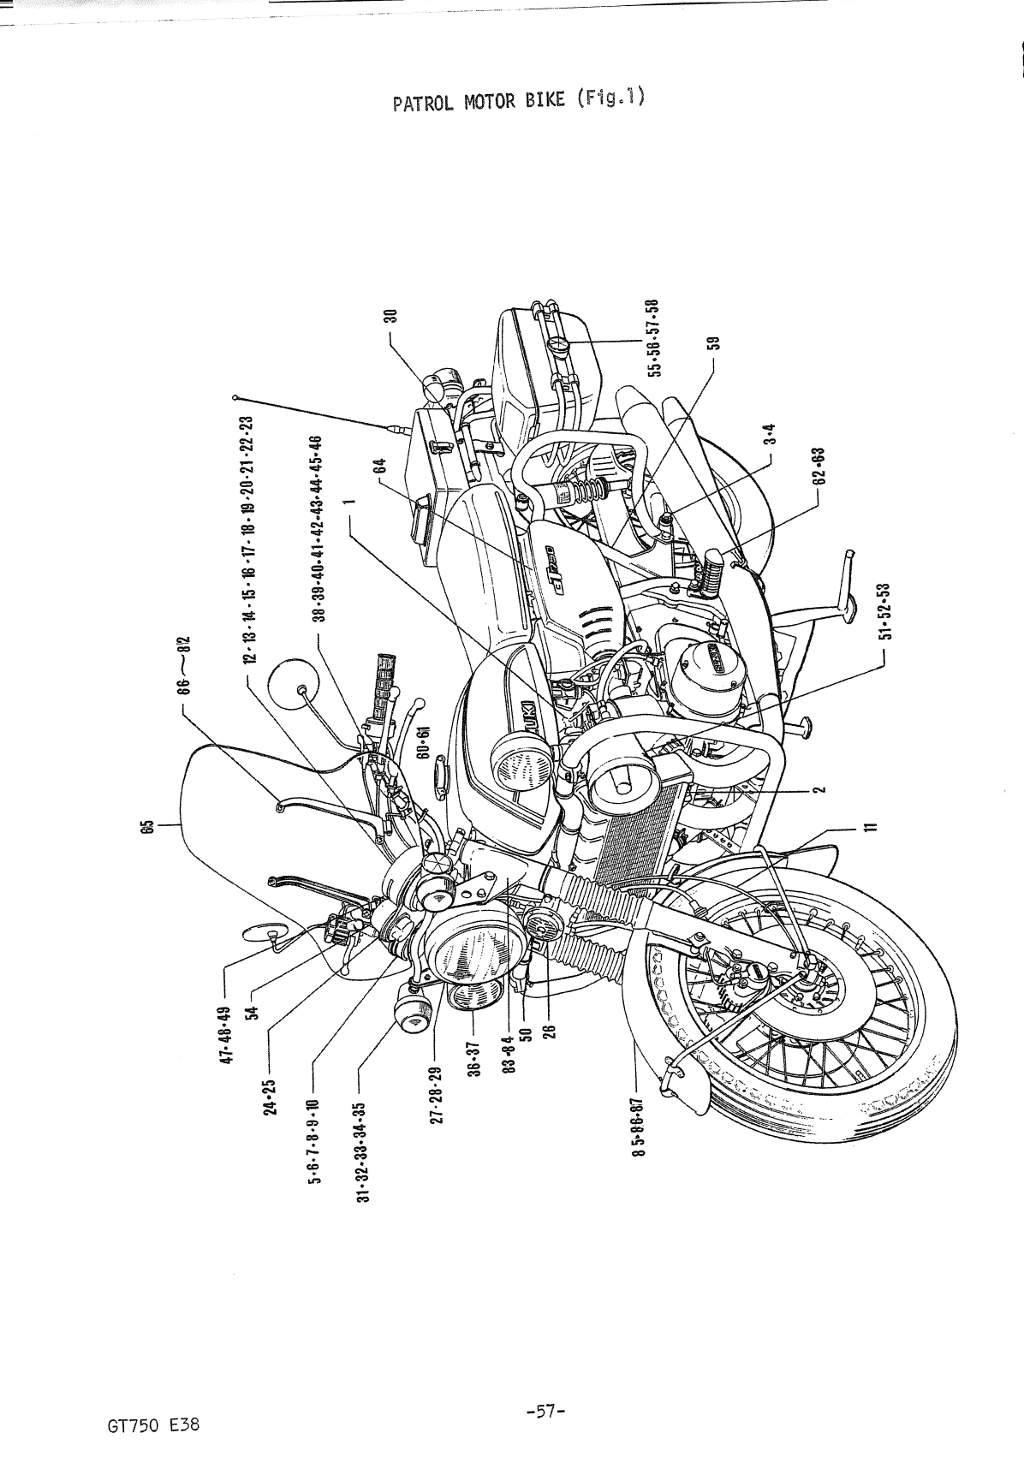 A Field Guide To The Suzuki Gt750 1995 Buick 3 1l Engine Diagram E38 Formosa Taiwan Parts Manual